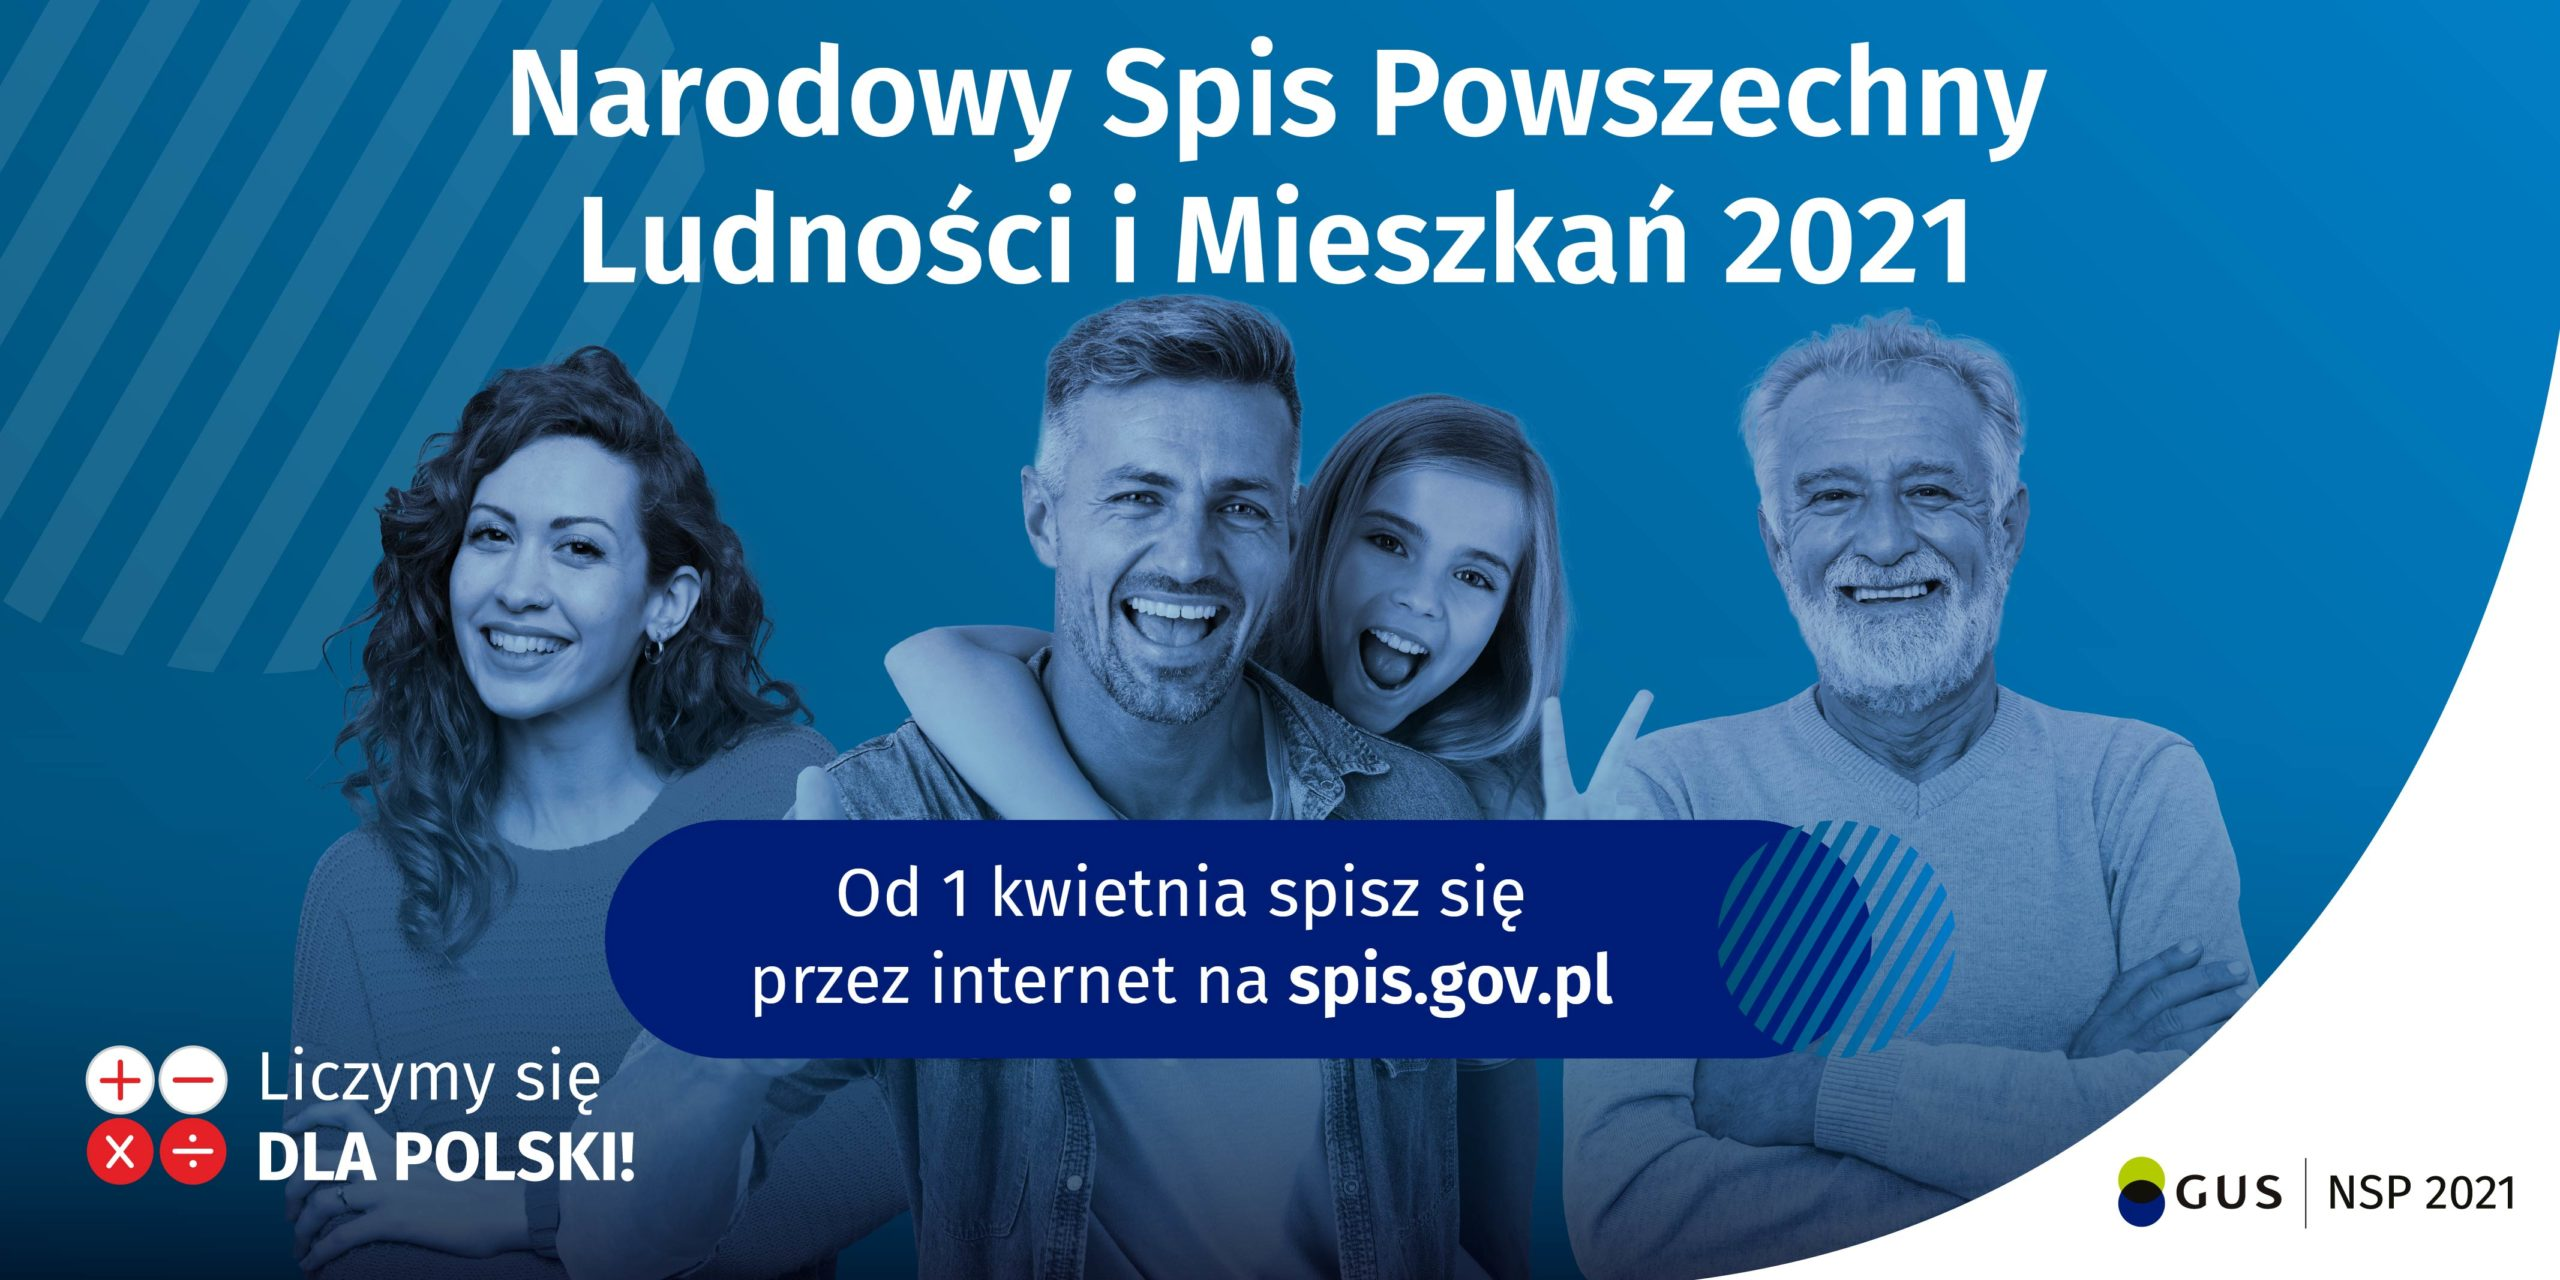 You are currently viewing Narodowy Spis Powszechny